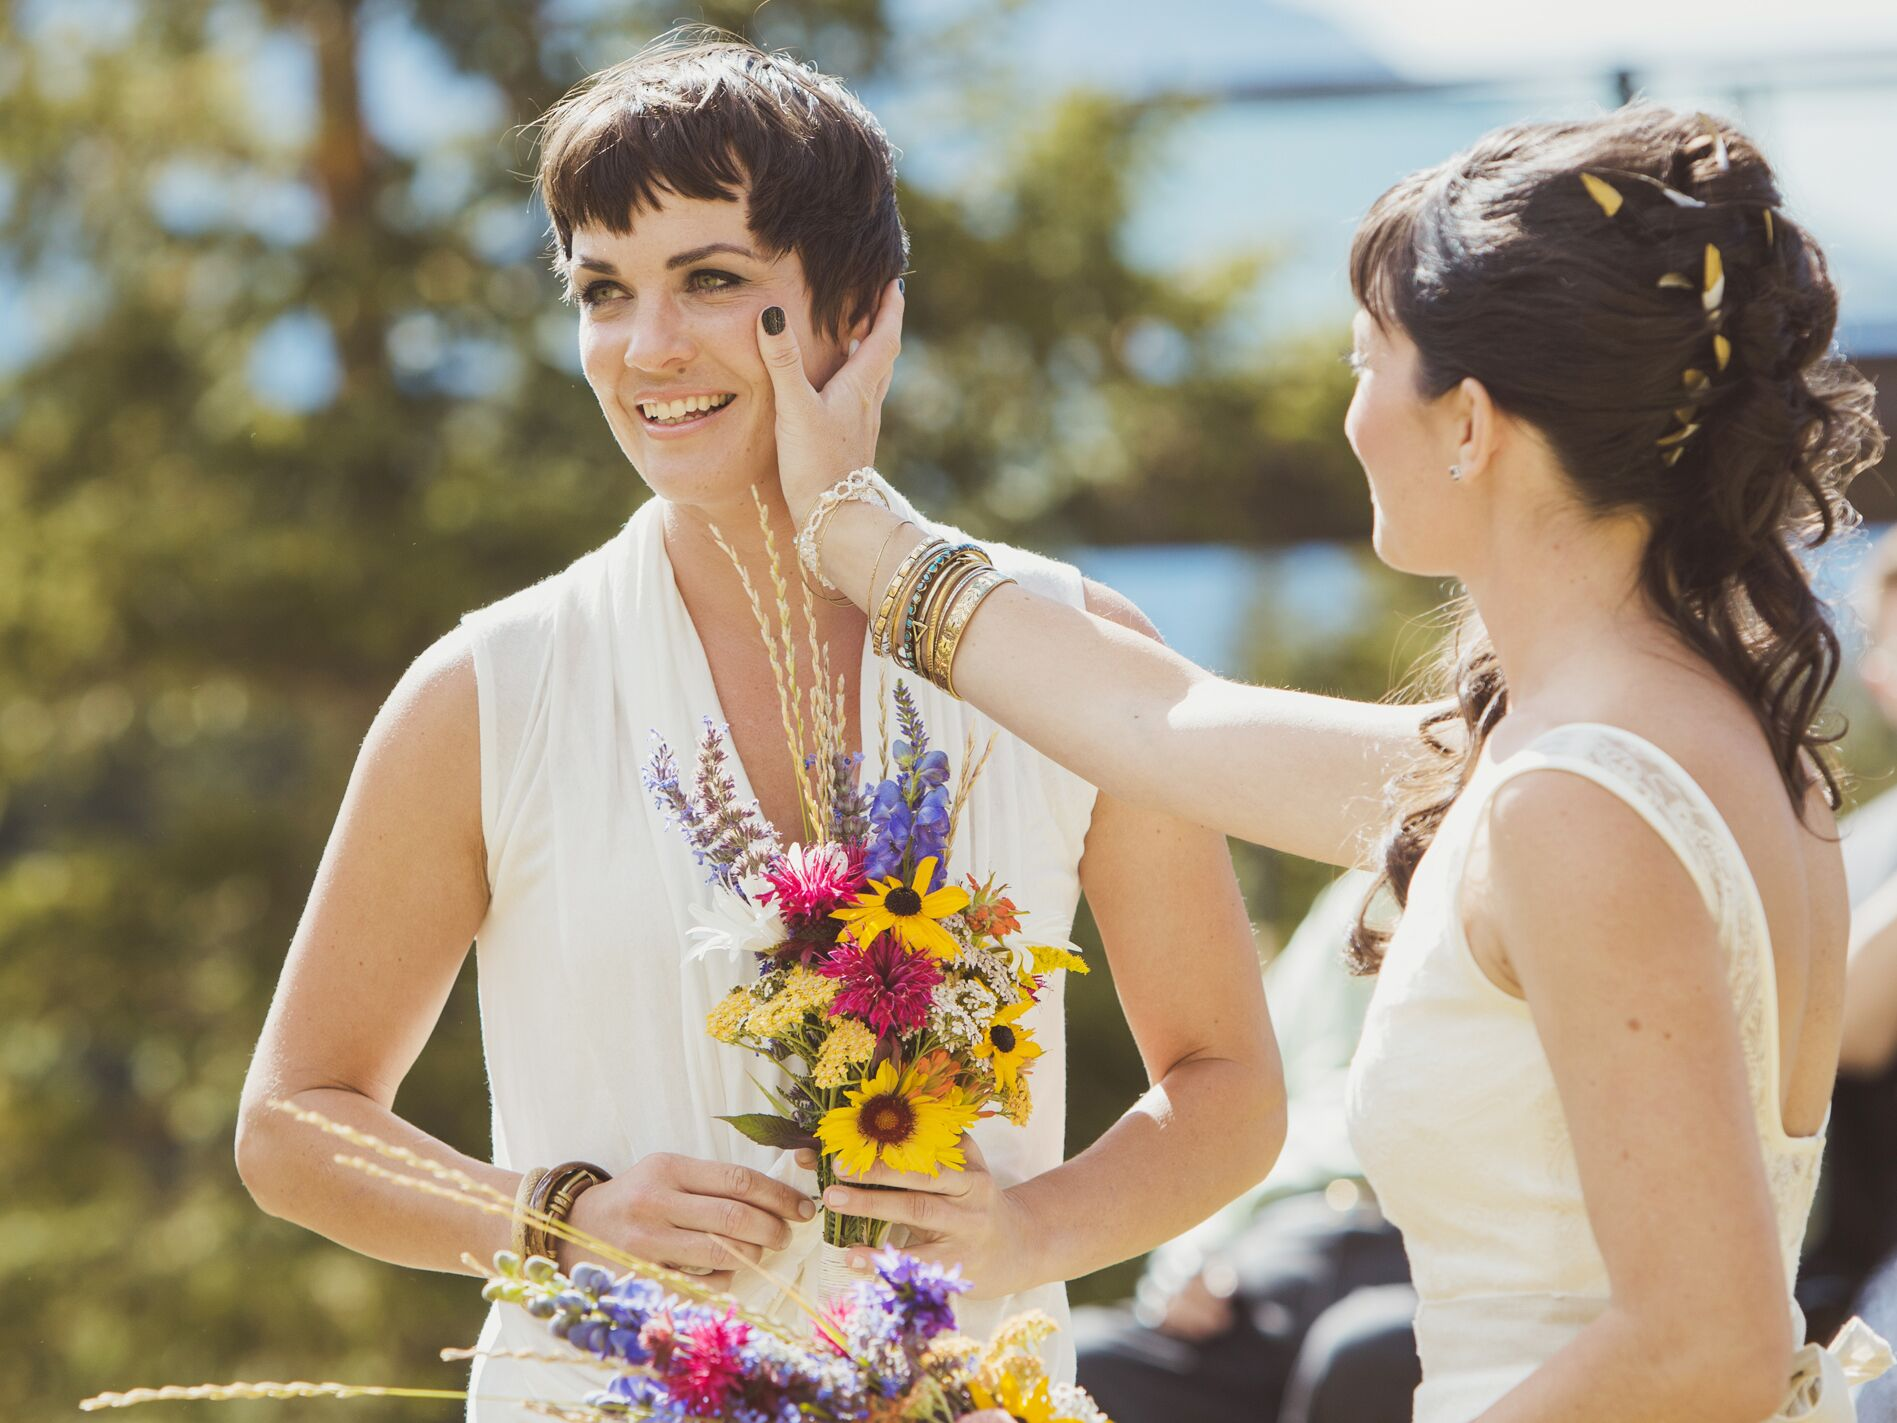 Gay Weddings - Lesbian Weddings